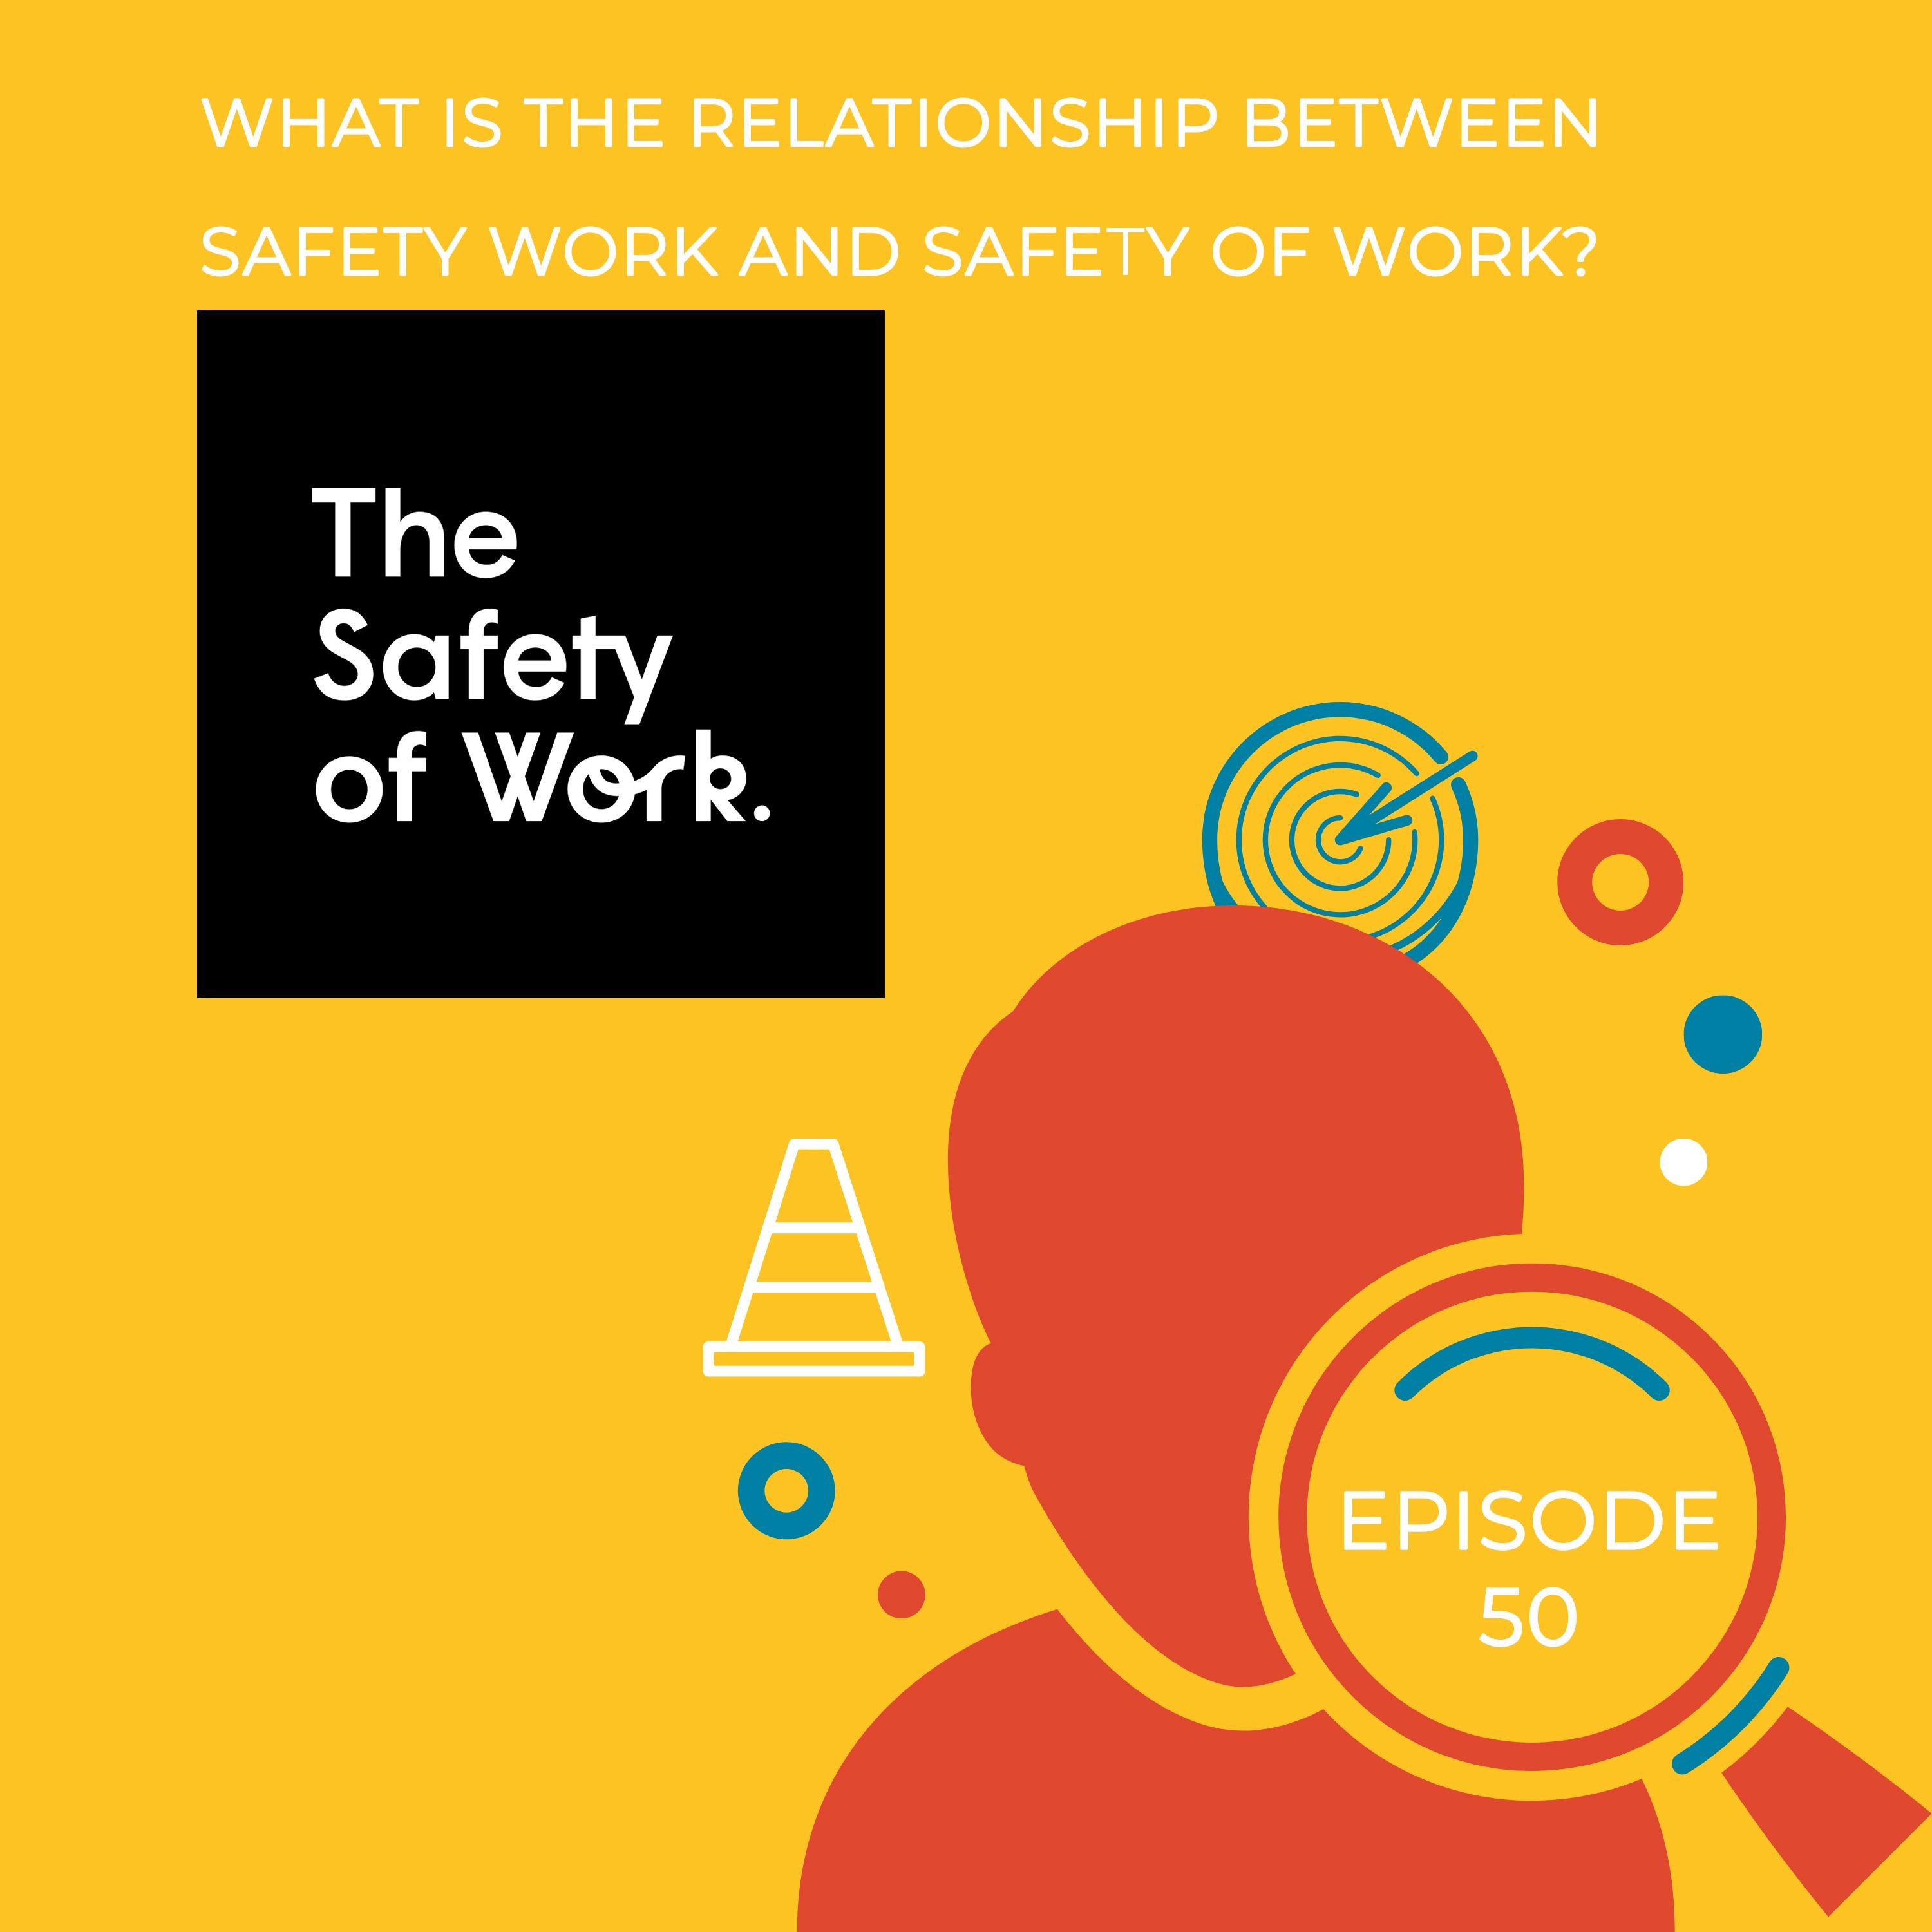 Ep. 50 What is the relationship between safety work and the safety of work